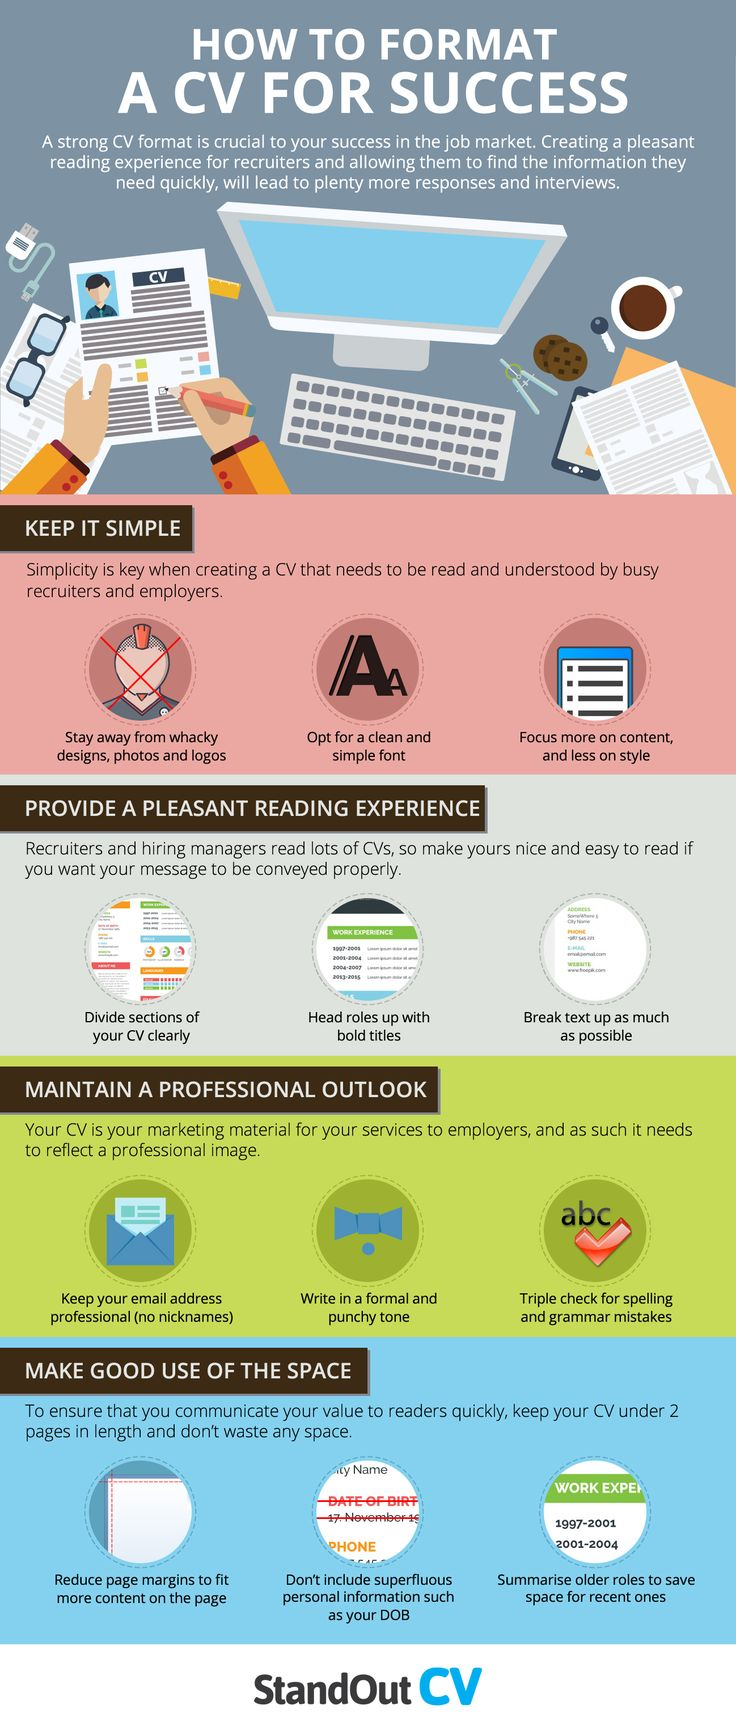 There is no need to over-complicate your CV with long-winded sections. This easy to follow infographic will help you to strctute your CV for success.